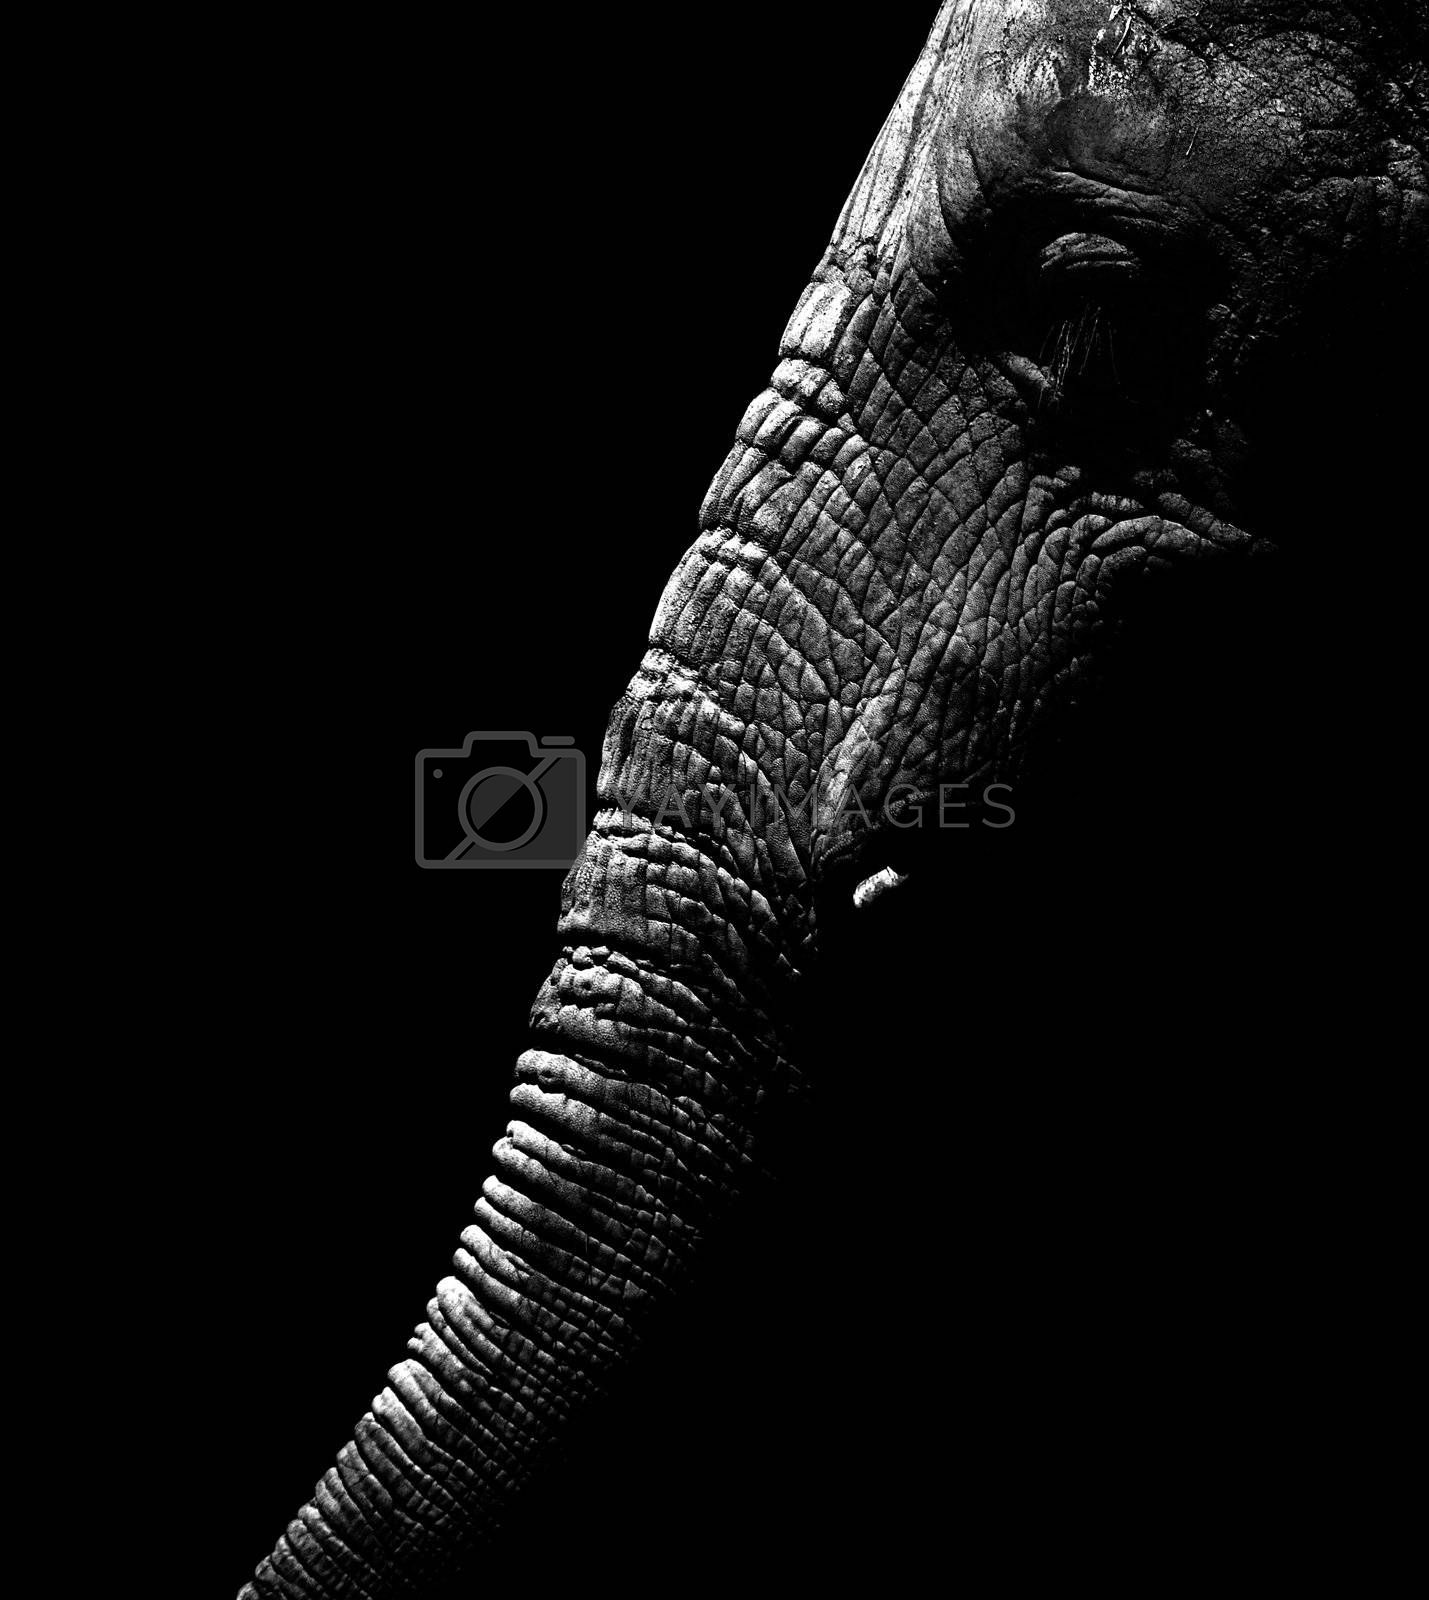 Elephant by alistaircotton